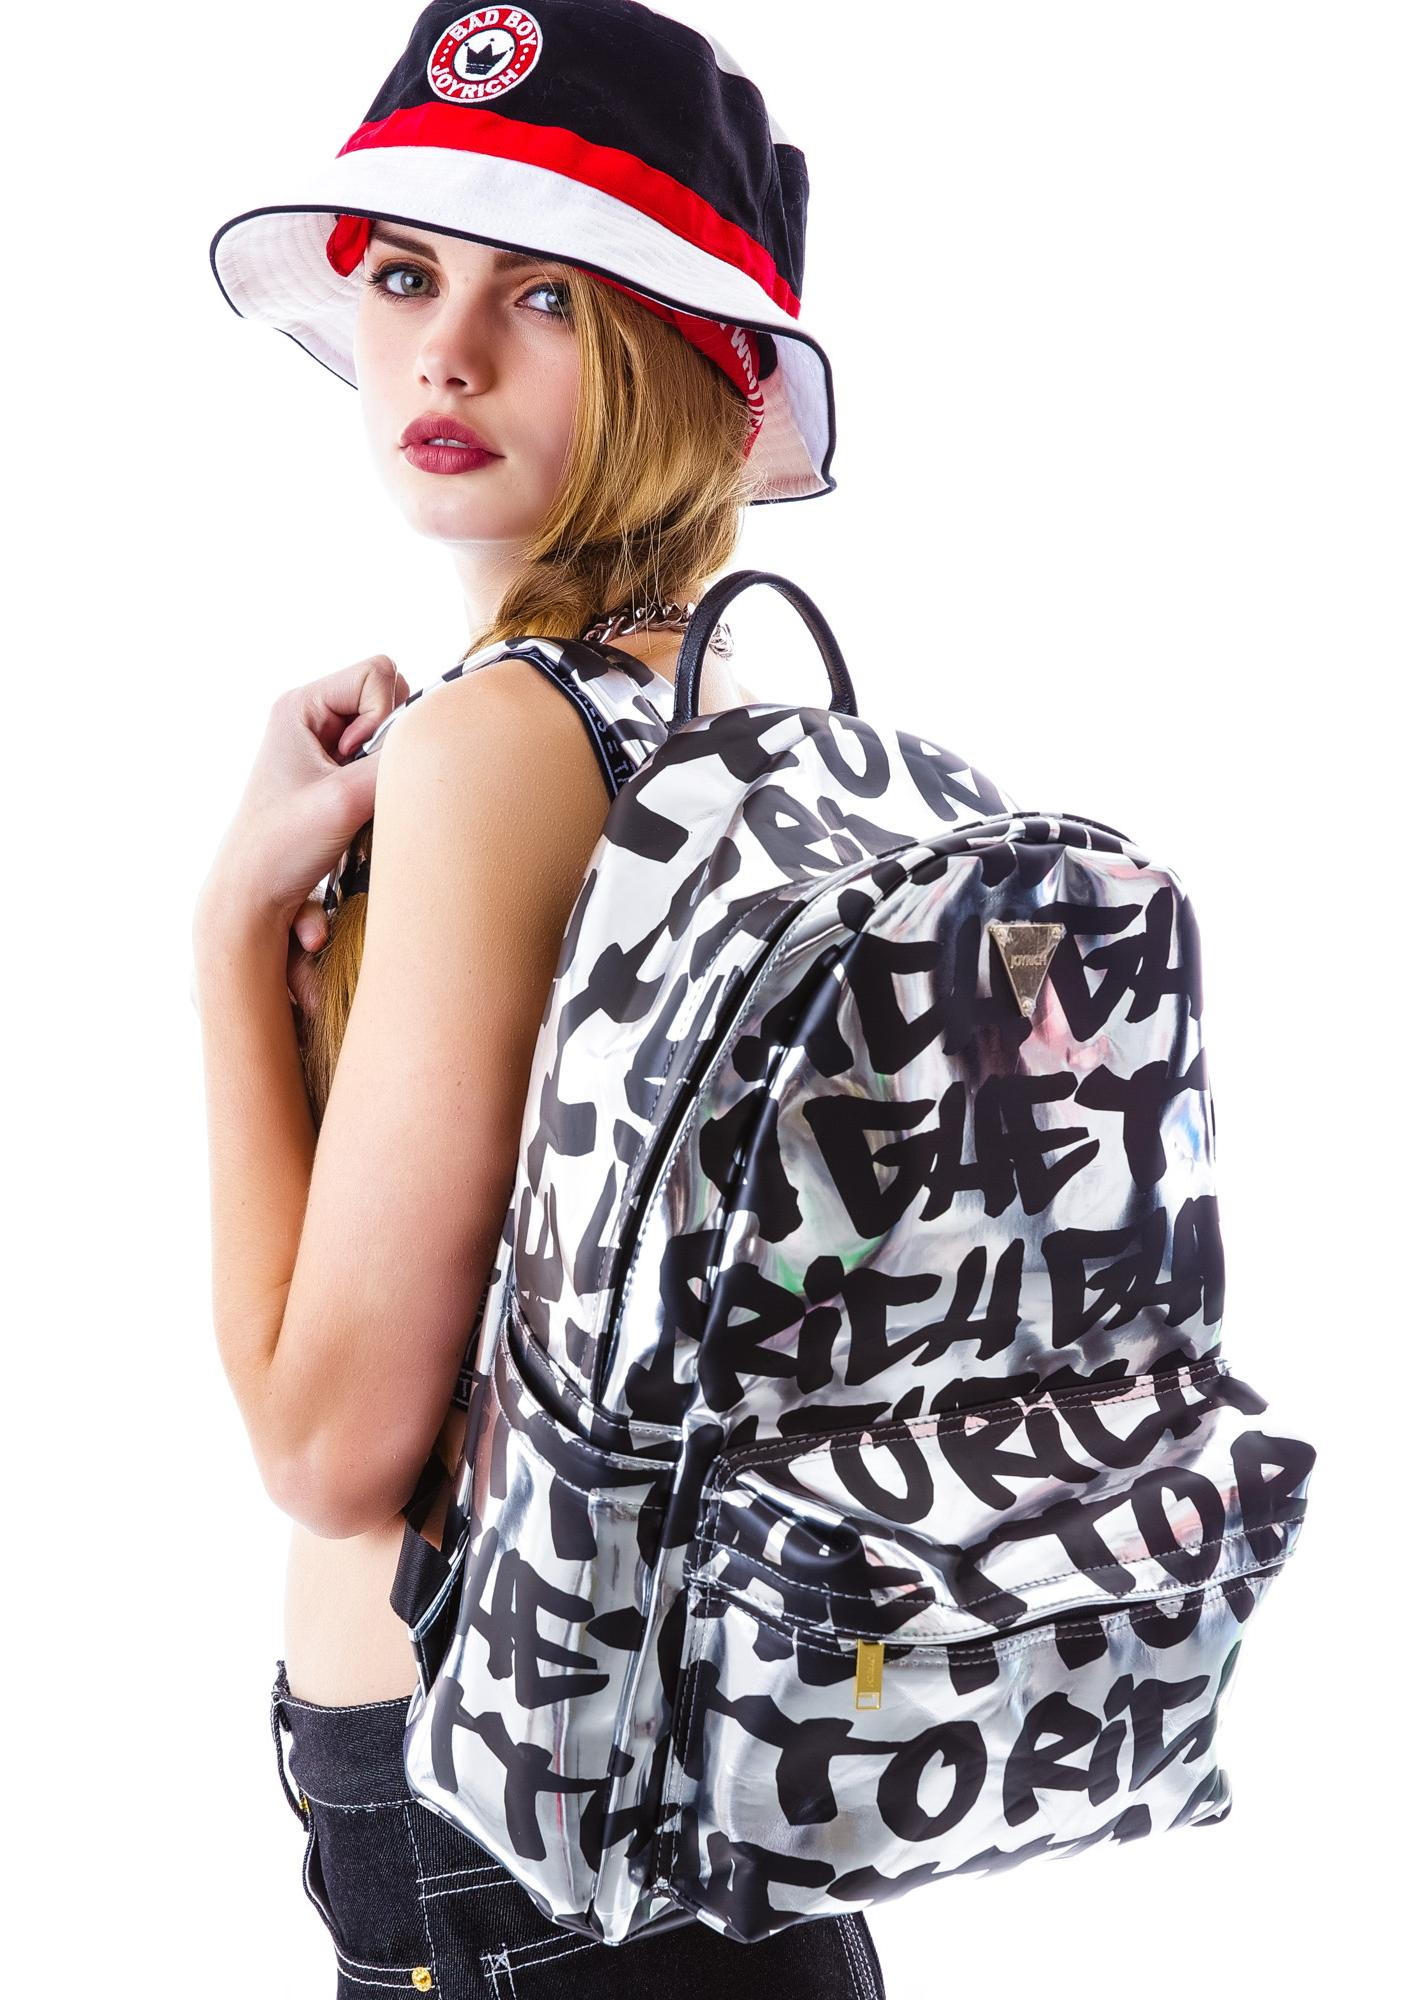 Joyrich Ghetto Graffiti Backpack